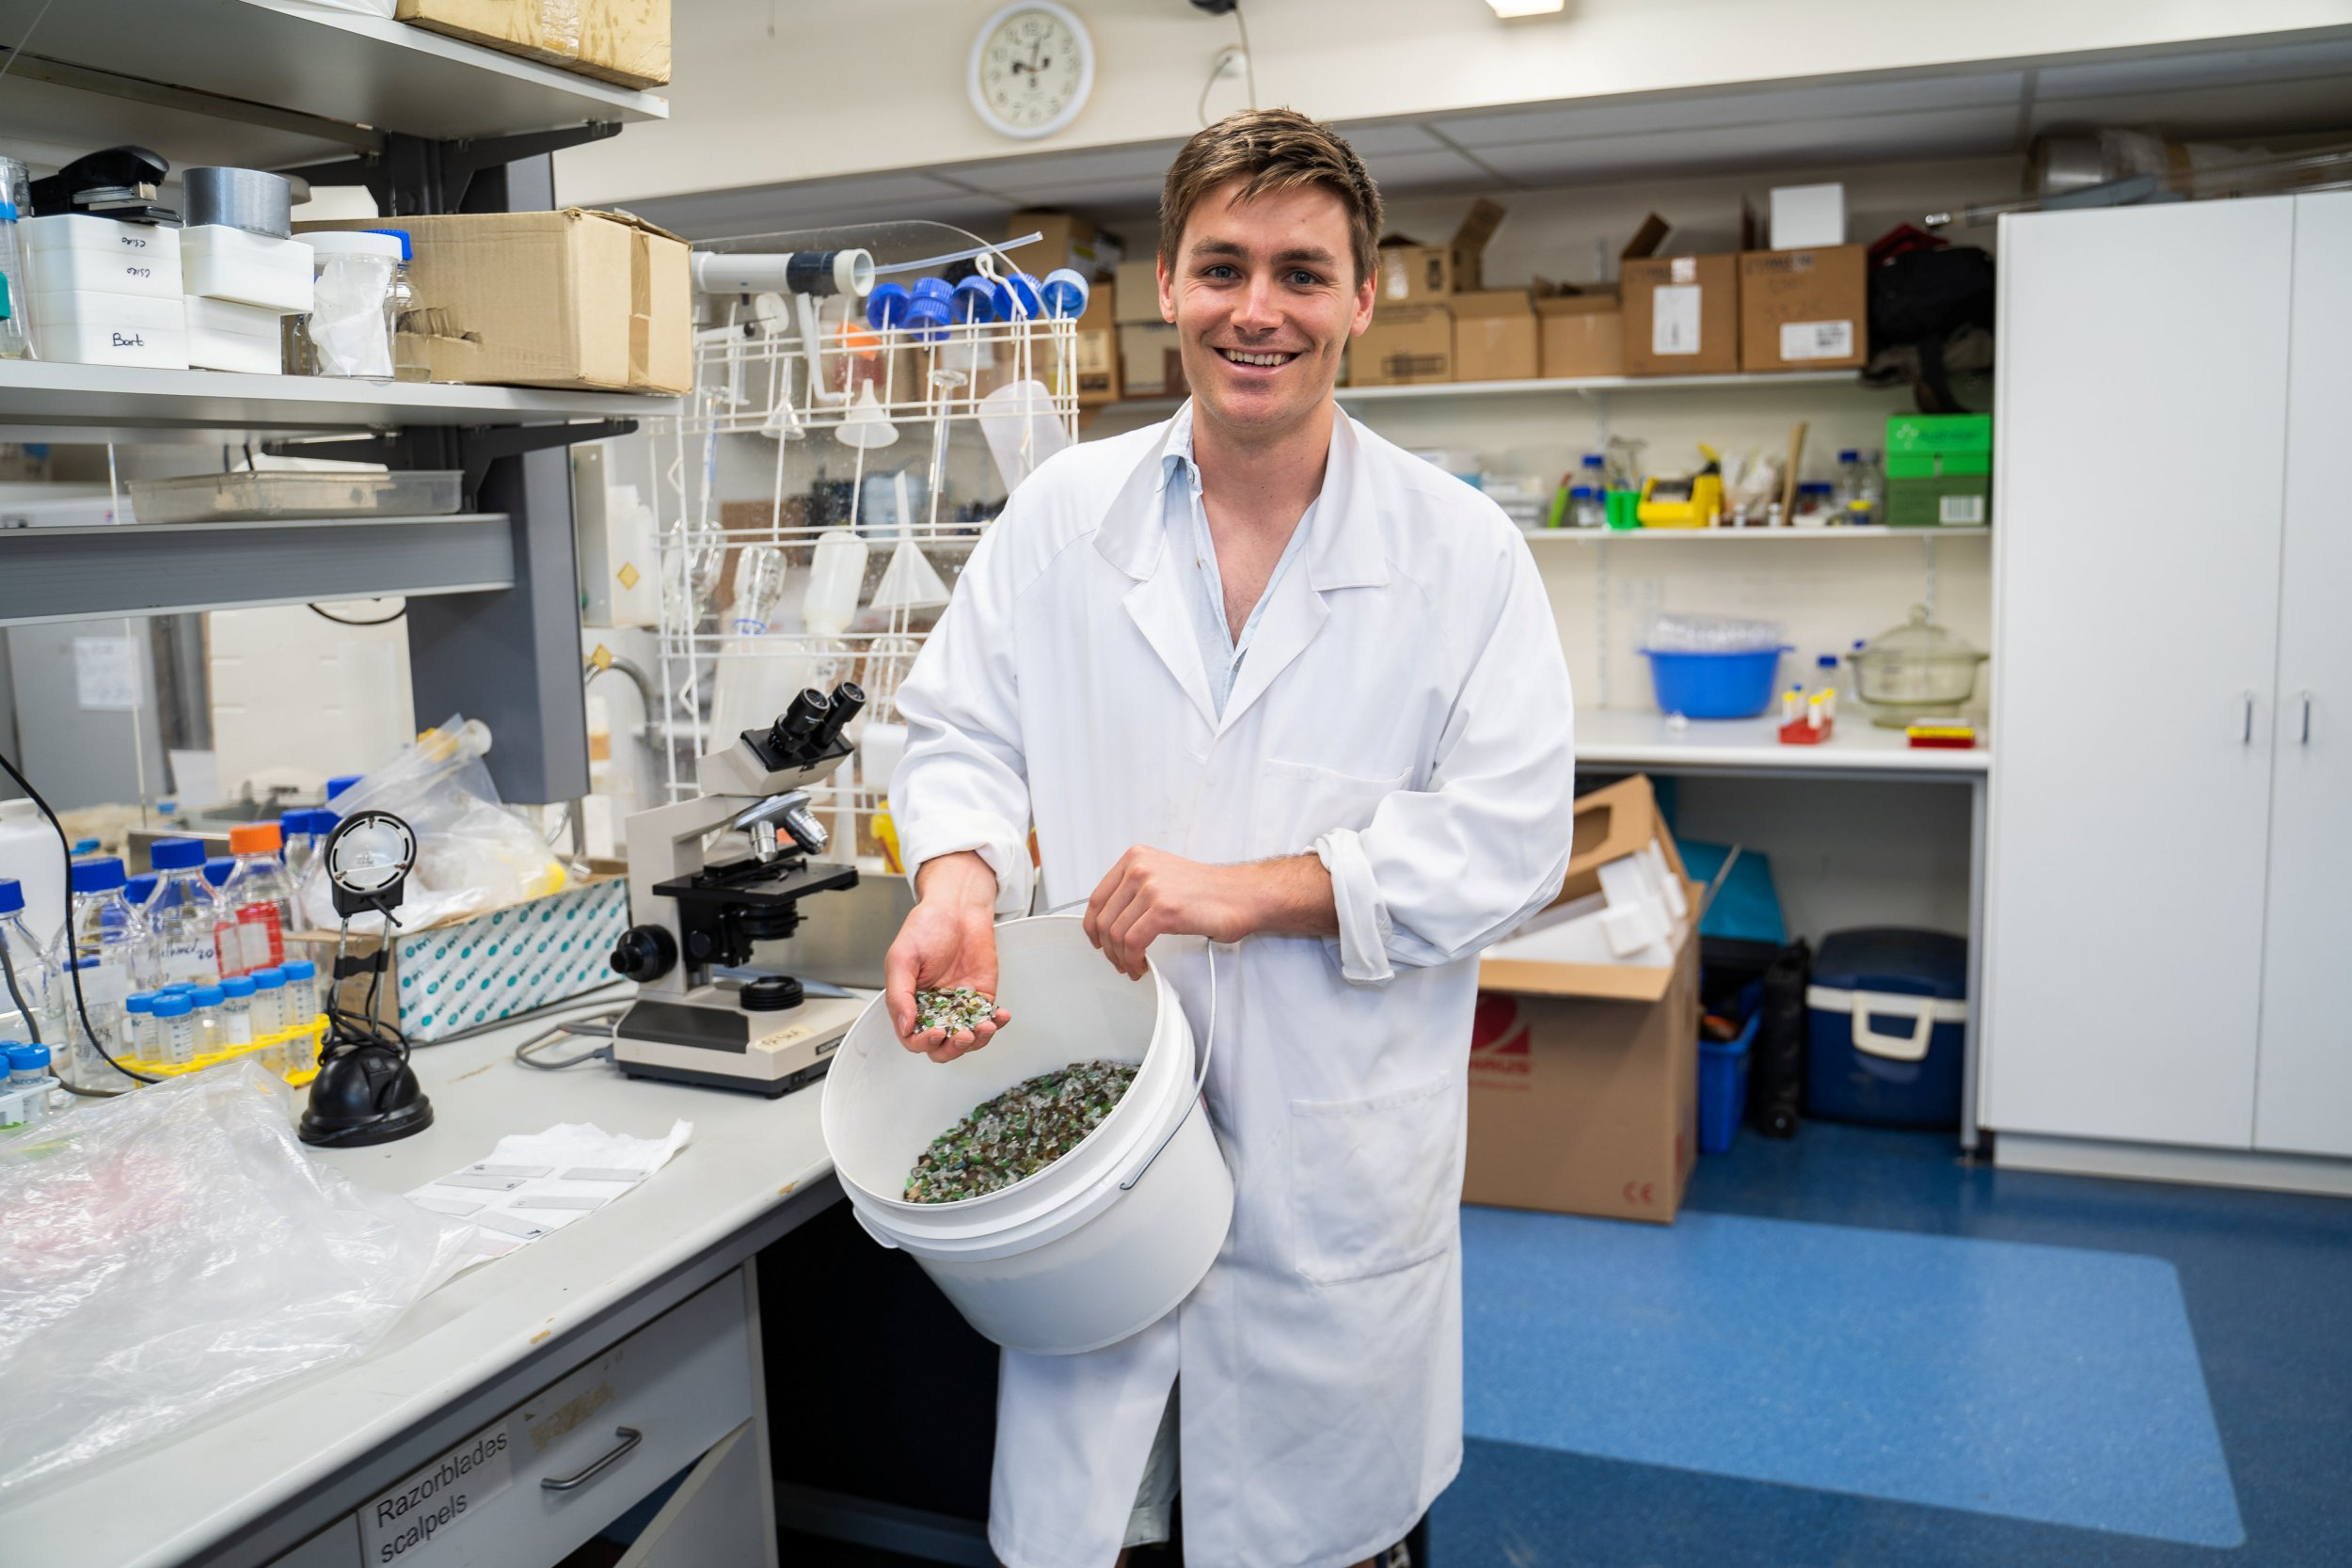 """PhD candidate Rhys Pirie. See National story NNglass; Scientists have invented a process that can turn waste glass into everything from toothpaste to car tyres. Glass is not always recyclable, leaving massive stockpiles with no use - but Australian researchers have now found a solution. PhD candidate Rhys Pirie said that a chemical found in 'drain cleaner' can break glass down and separate an amount of silica. This is then extracted for use in a commercial setting, meaning the liquid can be used for detergent, or even in crop fertilizer. Because of the effort required to sort out smaller fragments of glass, they tend to be discarded, stored, or sent to the landfill. Mr Pirie and Professor Damien Batstone from the University of Queensland were able to dissolve fragments into liquid silicate. Silicates are used in industry as adhesives, detergents, ingredients in cleaning compounds, cements, binders, and coatings. Mr Pirie said: """"We are taking waste glass that is currently going to the landfill because it is too small to be sorted into the right colour. """"We are dissolving it in a chemical most people know as drain cleaner - and once it's in that form it can be used to make things like tyres, detergent or silica gel. """"We can get all that silicate out of the glass. Glass is about 70 to 75 per cent silica. You need about 1.3kg of glass to make 1k of silica."""